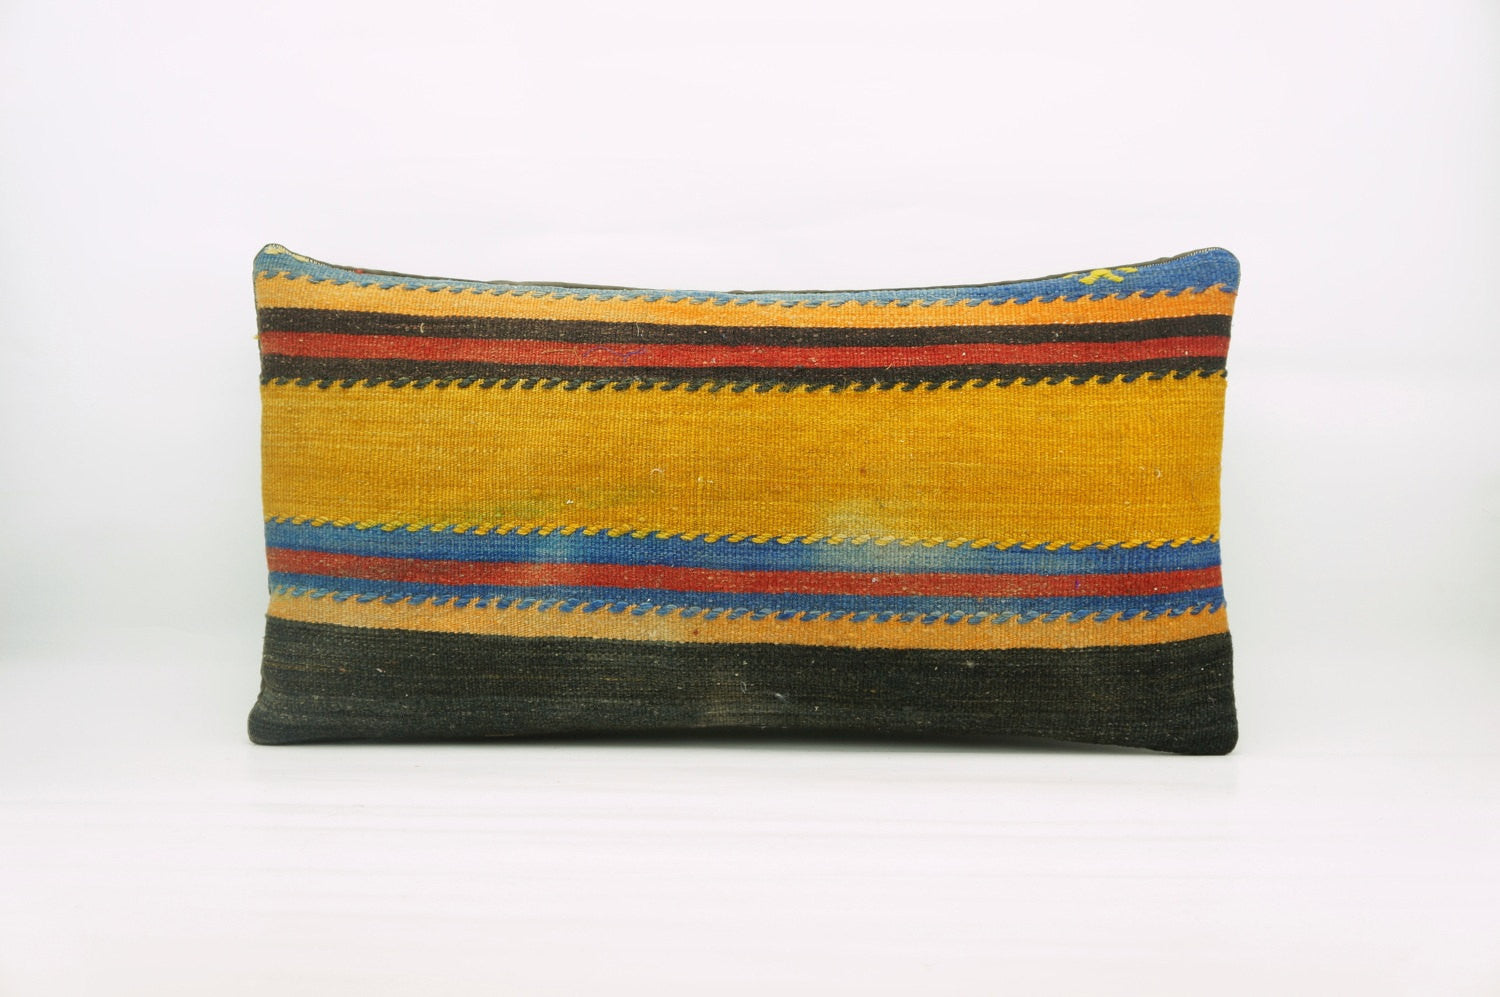 12x24  Geometric kilim pillow sham, Tribal cushion cover, Striped Handwoven pillowcase , mid century decor multi colour 1218